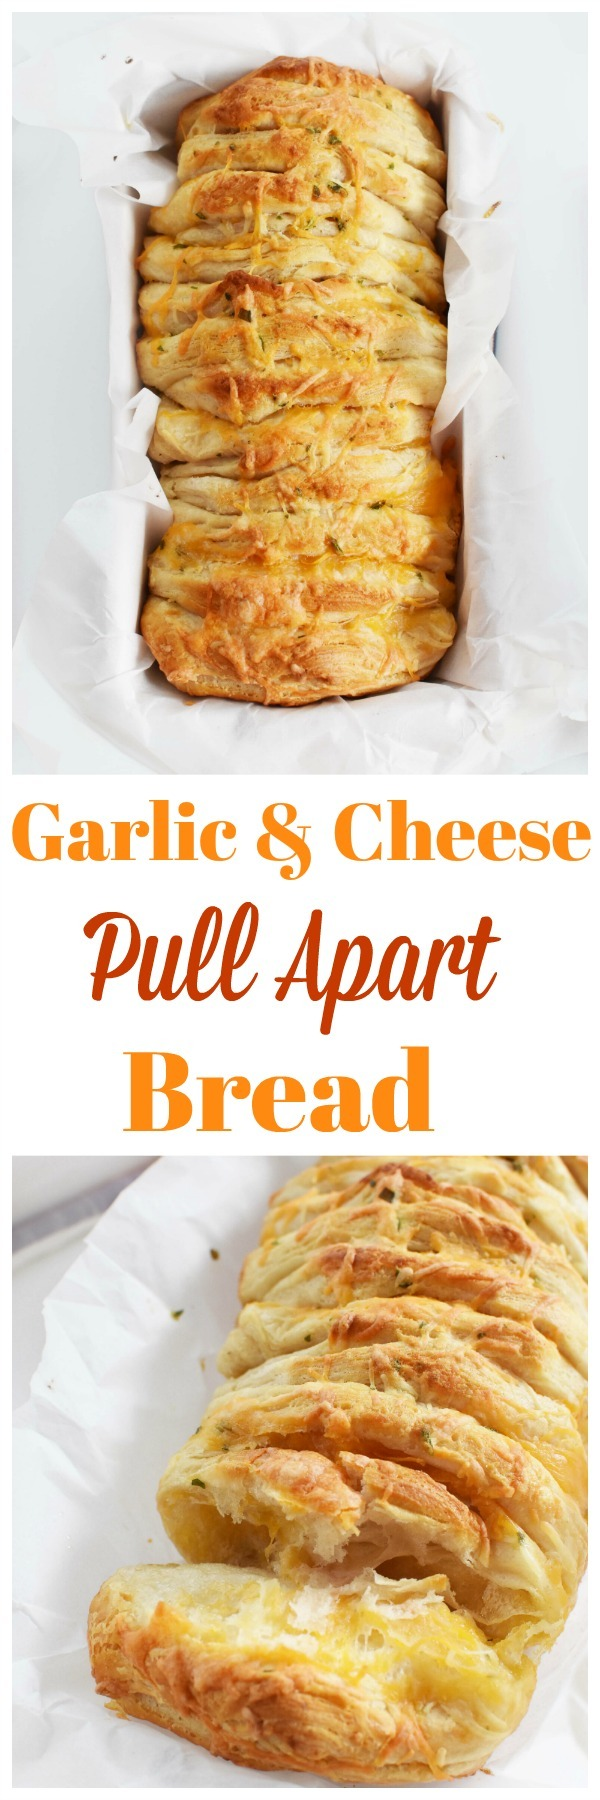 Easy Cheese Pull-Apart Garlic Bread (with Biscuit Dough)